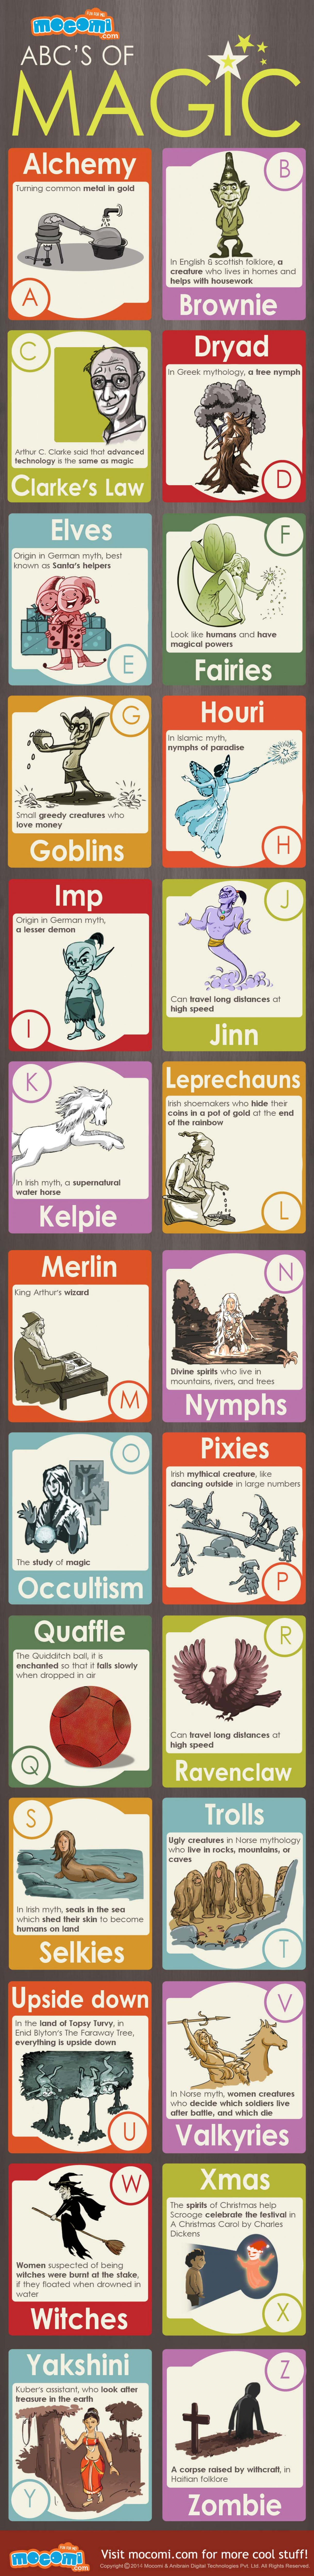 ABC's of Magic - Terms and Phrases Infographic